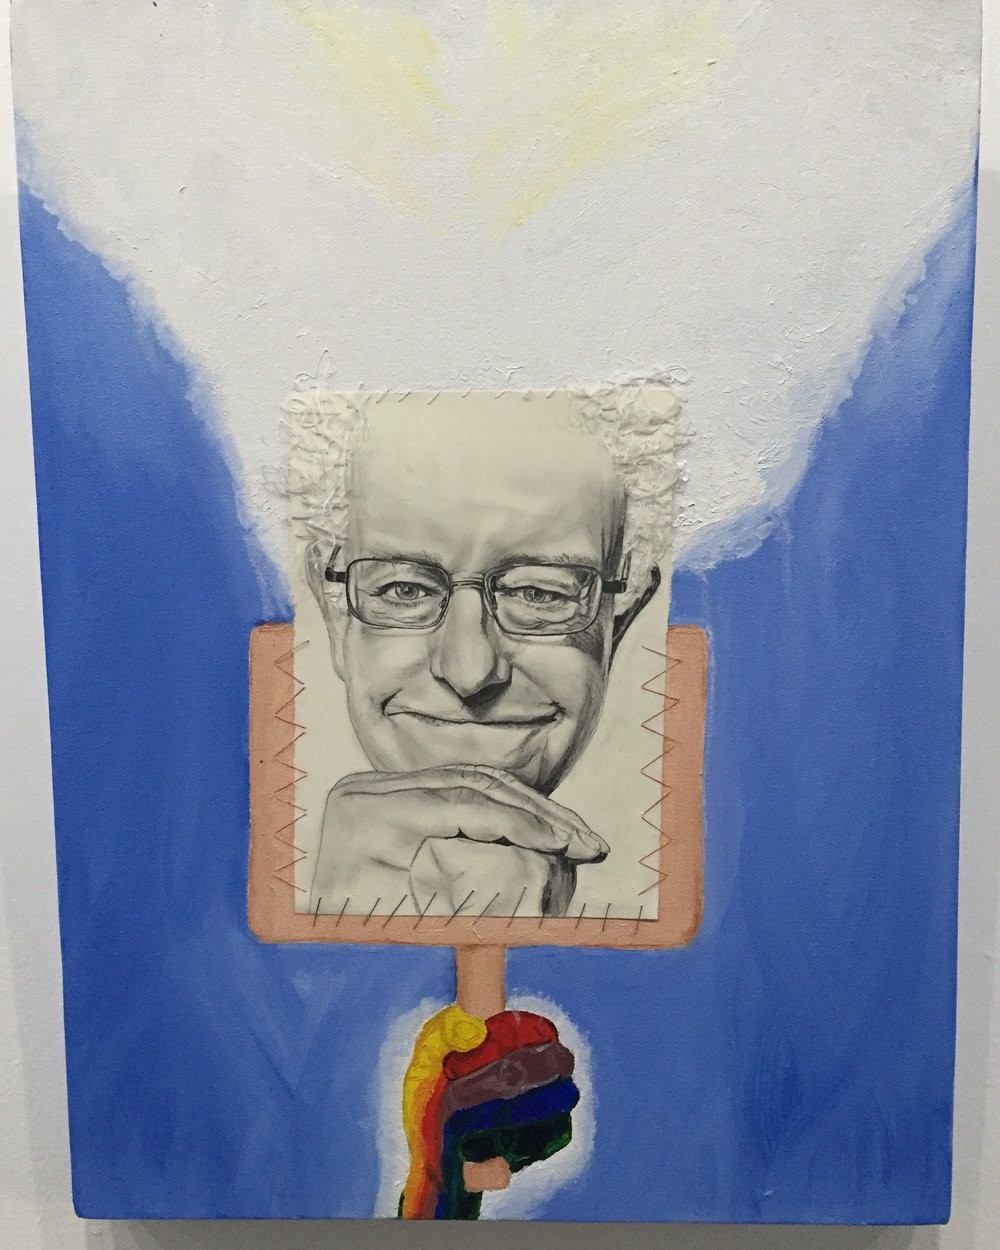 'Bernie On a Placard in the Sky' 2016. Oil on canvas, cotton embroidered pencil drawing.